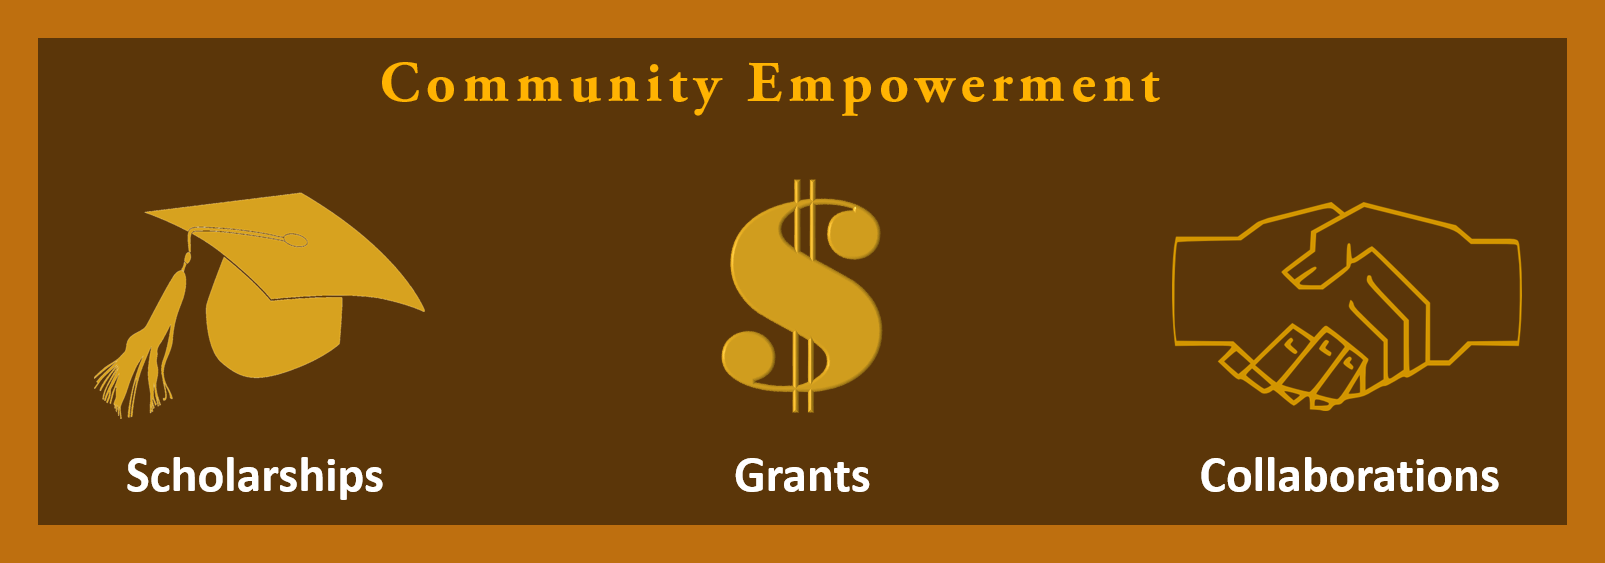 Community_Empowerment_Banner.png